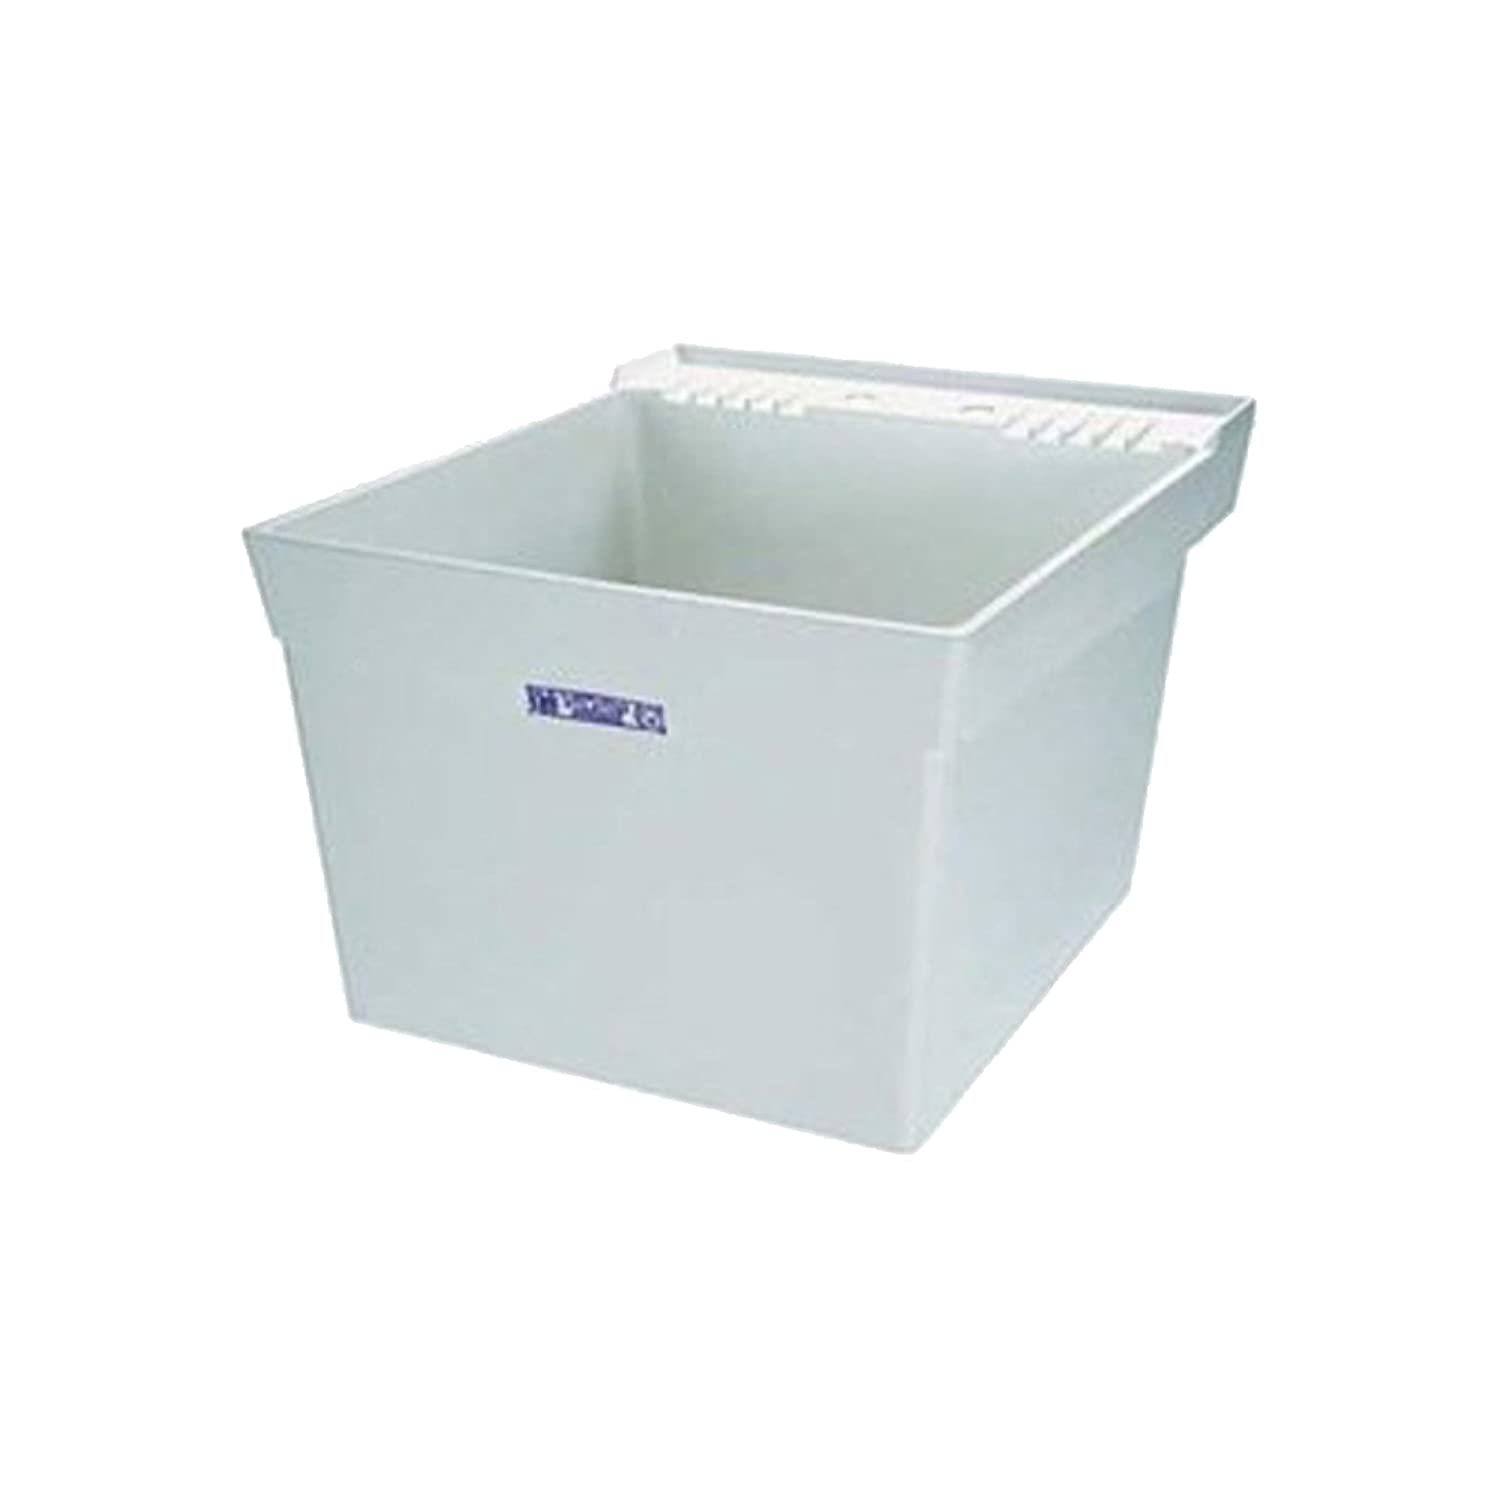 Lovely Mustee 17W Utilatub Laundry Tub Wall Mount, 23.5 Inch X 23 Inch, White   Utility  Sinks   Amazon.com